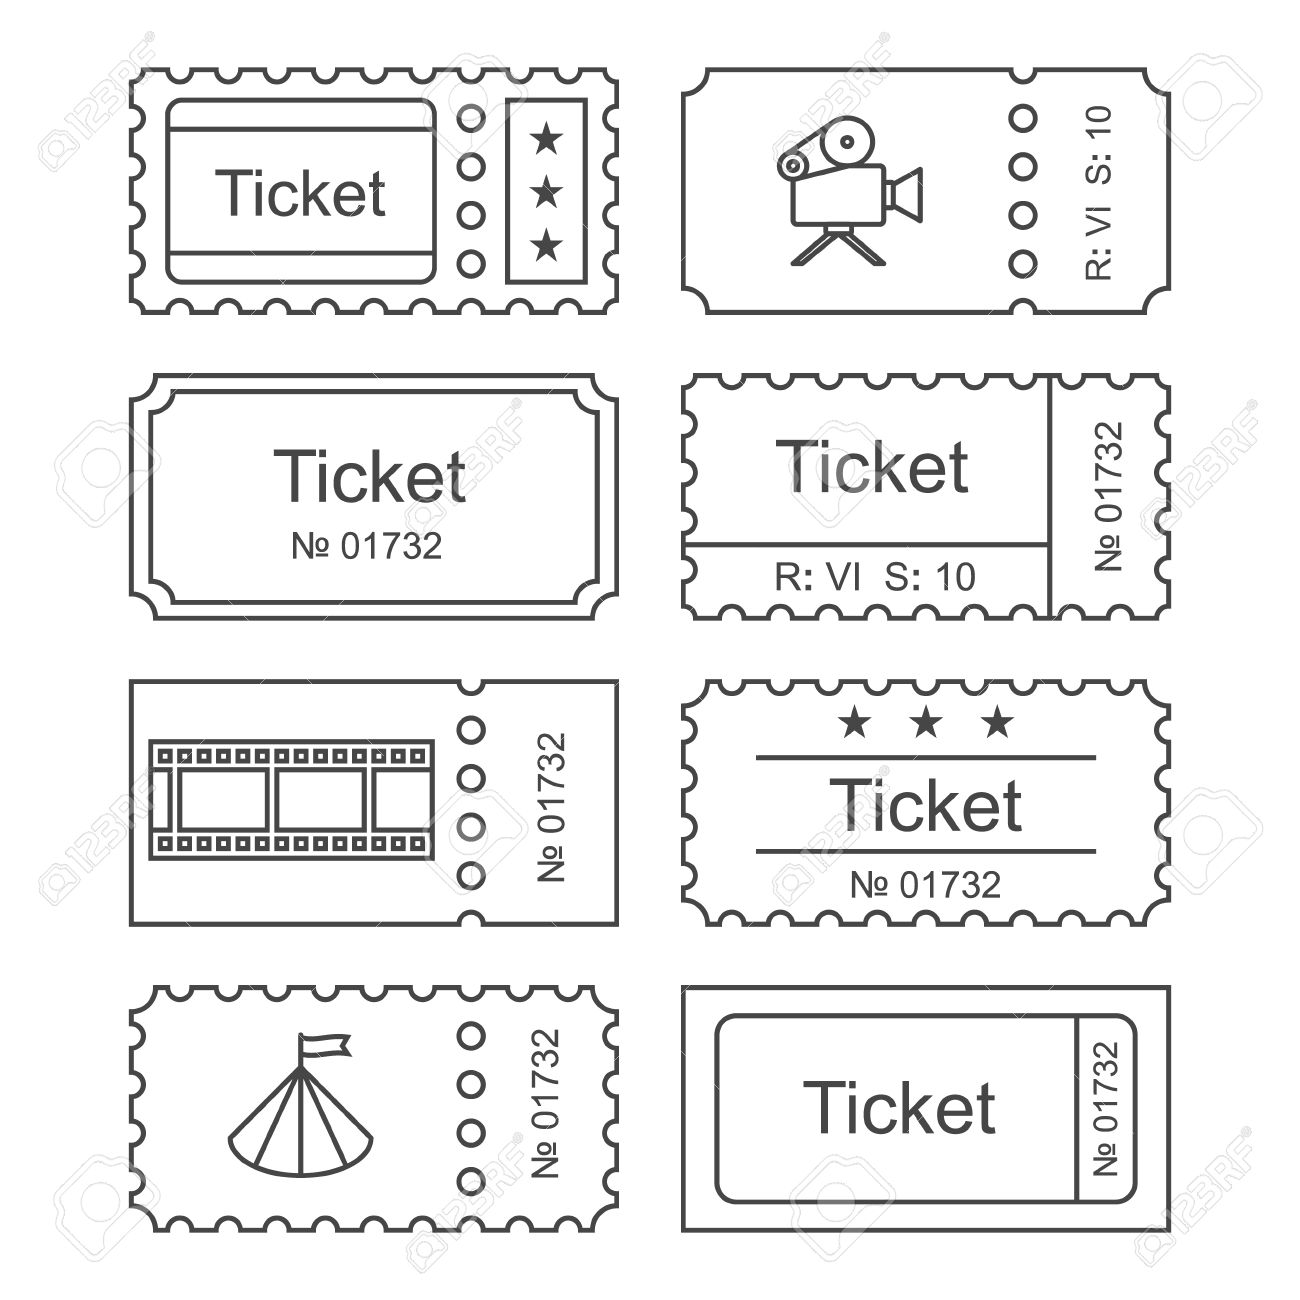 ticket icon in the outline style ticket illustration ticket stub isolated on a background